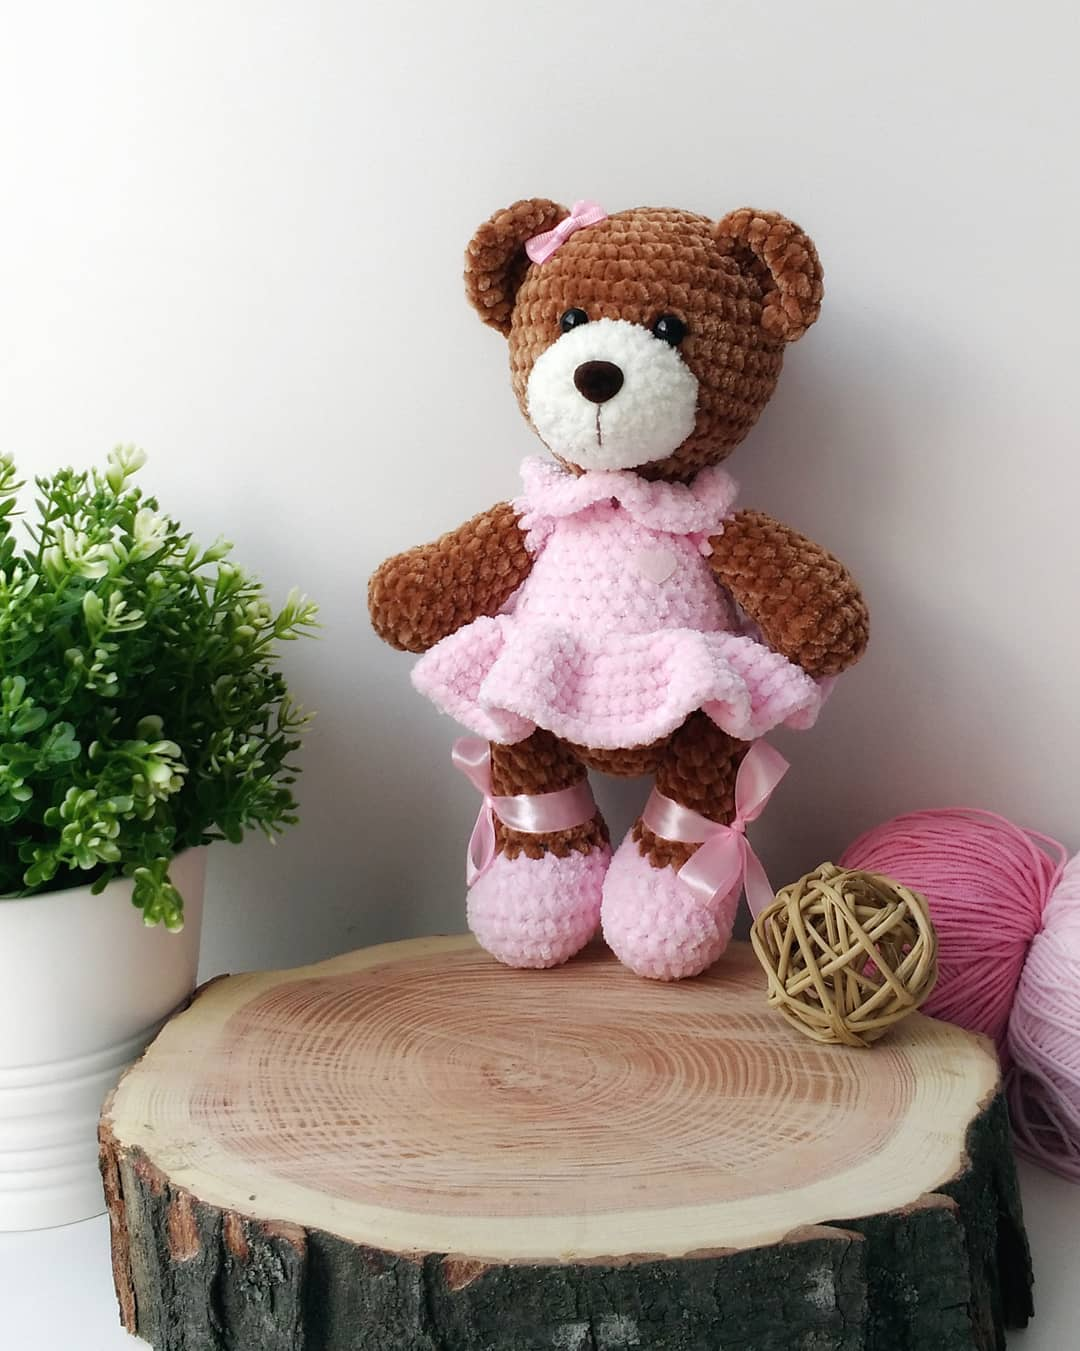 Amigurumi plush bear crochet toy